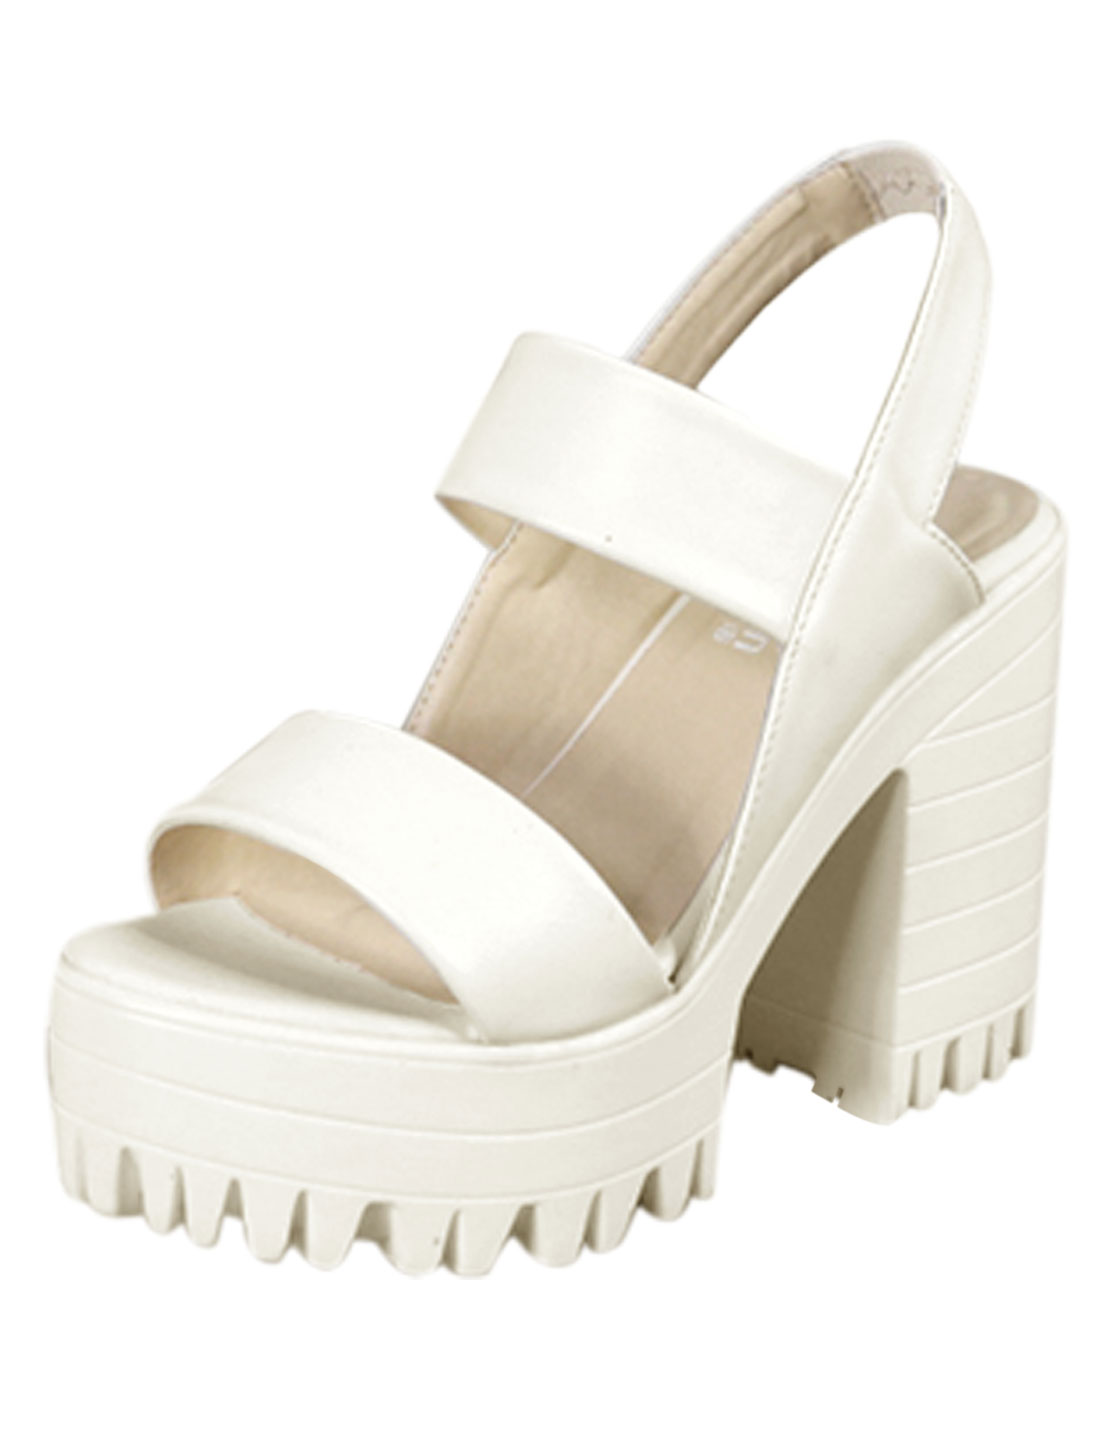 Women Ankle Strap Lug Sole Chunky Heels Summer Relaxed Sandals White US 7.5